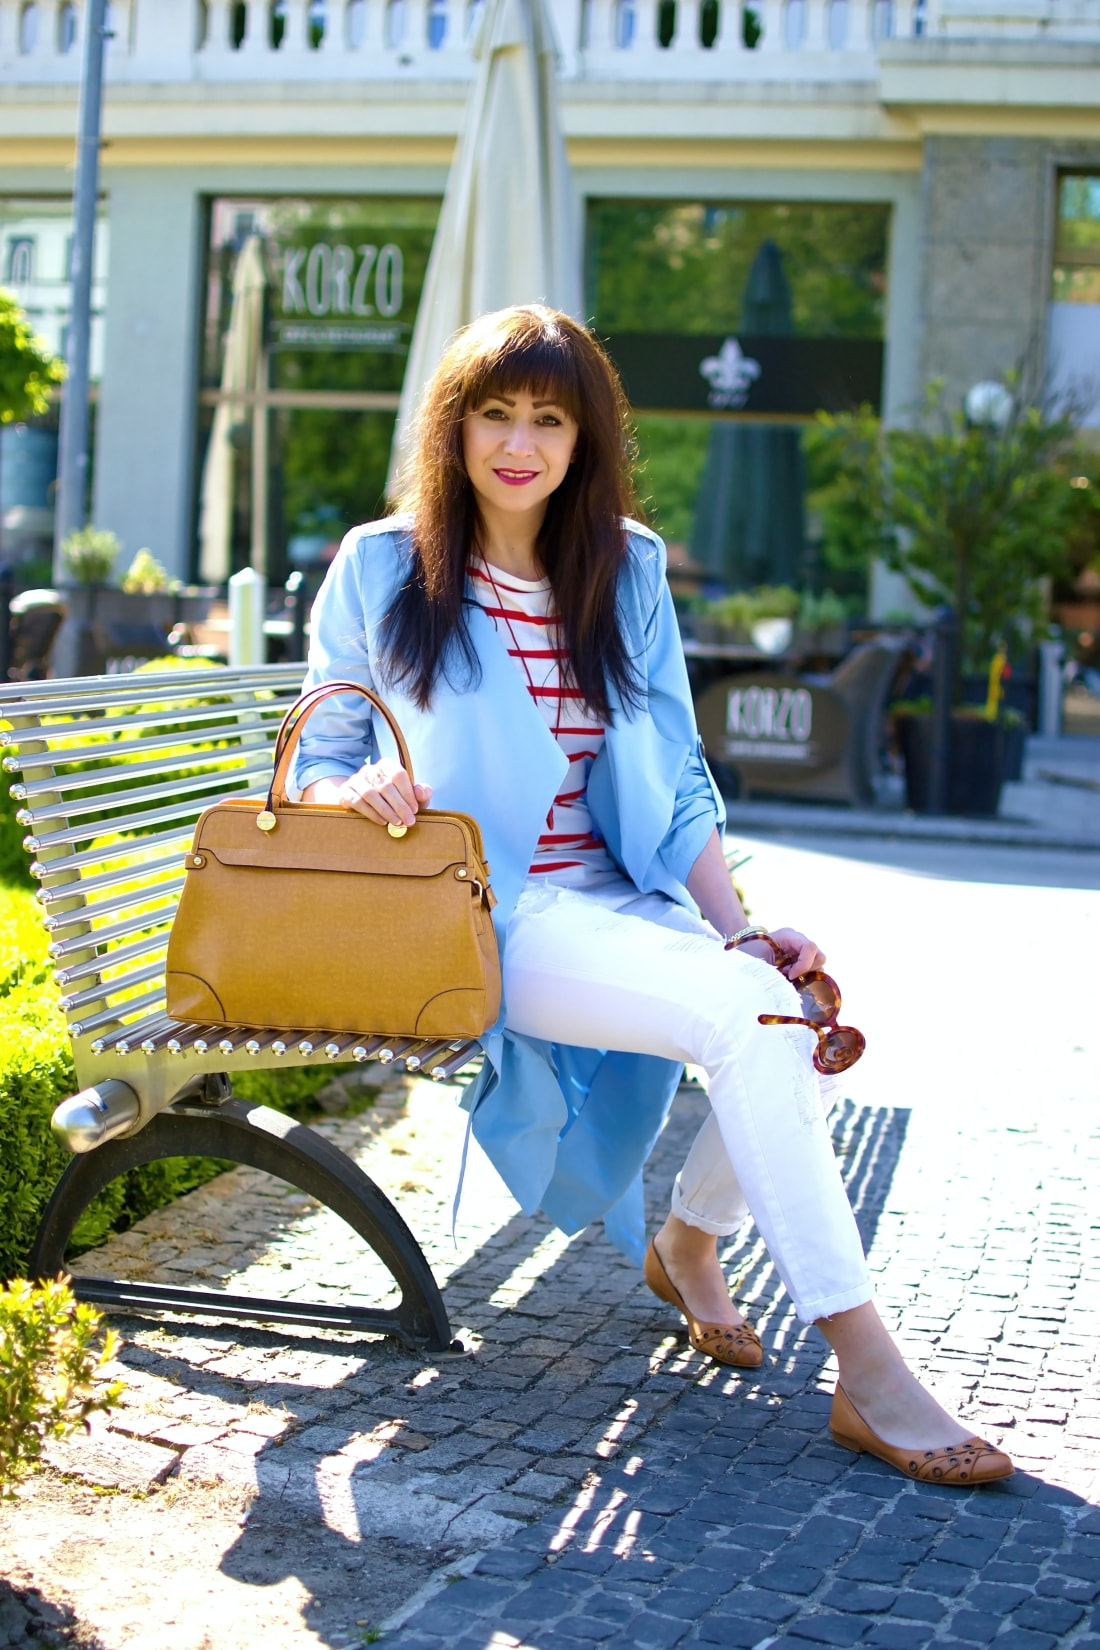 katharine-fashion-is-beautiful-blog-stylovy-trenckot-1-blogger